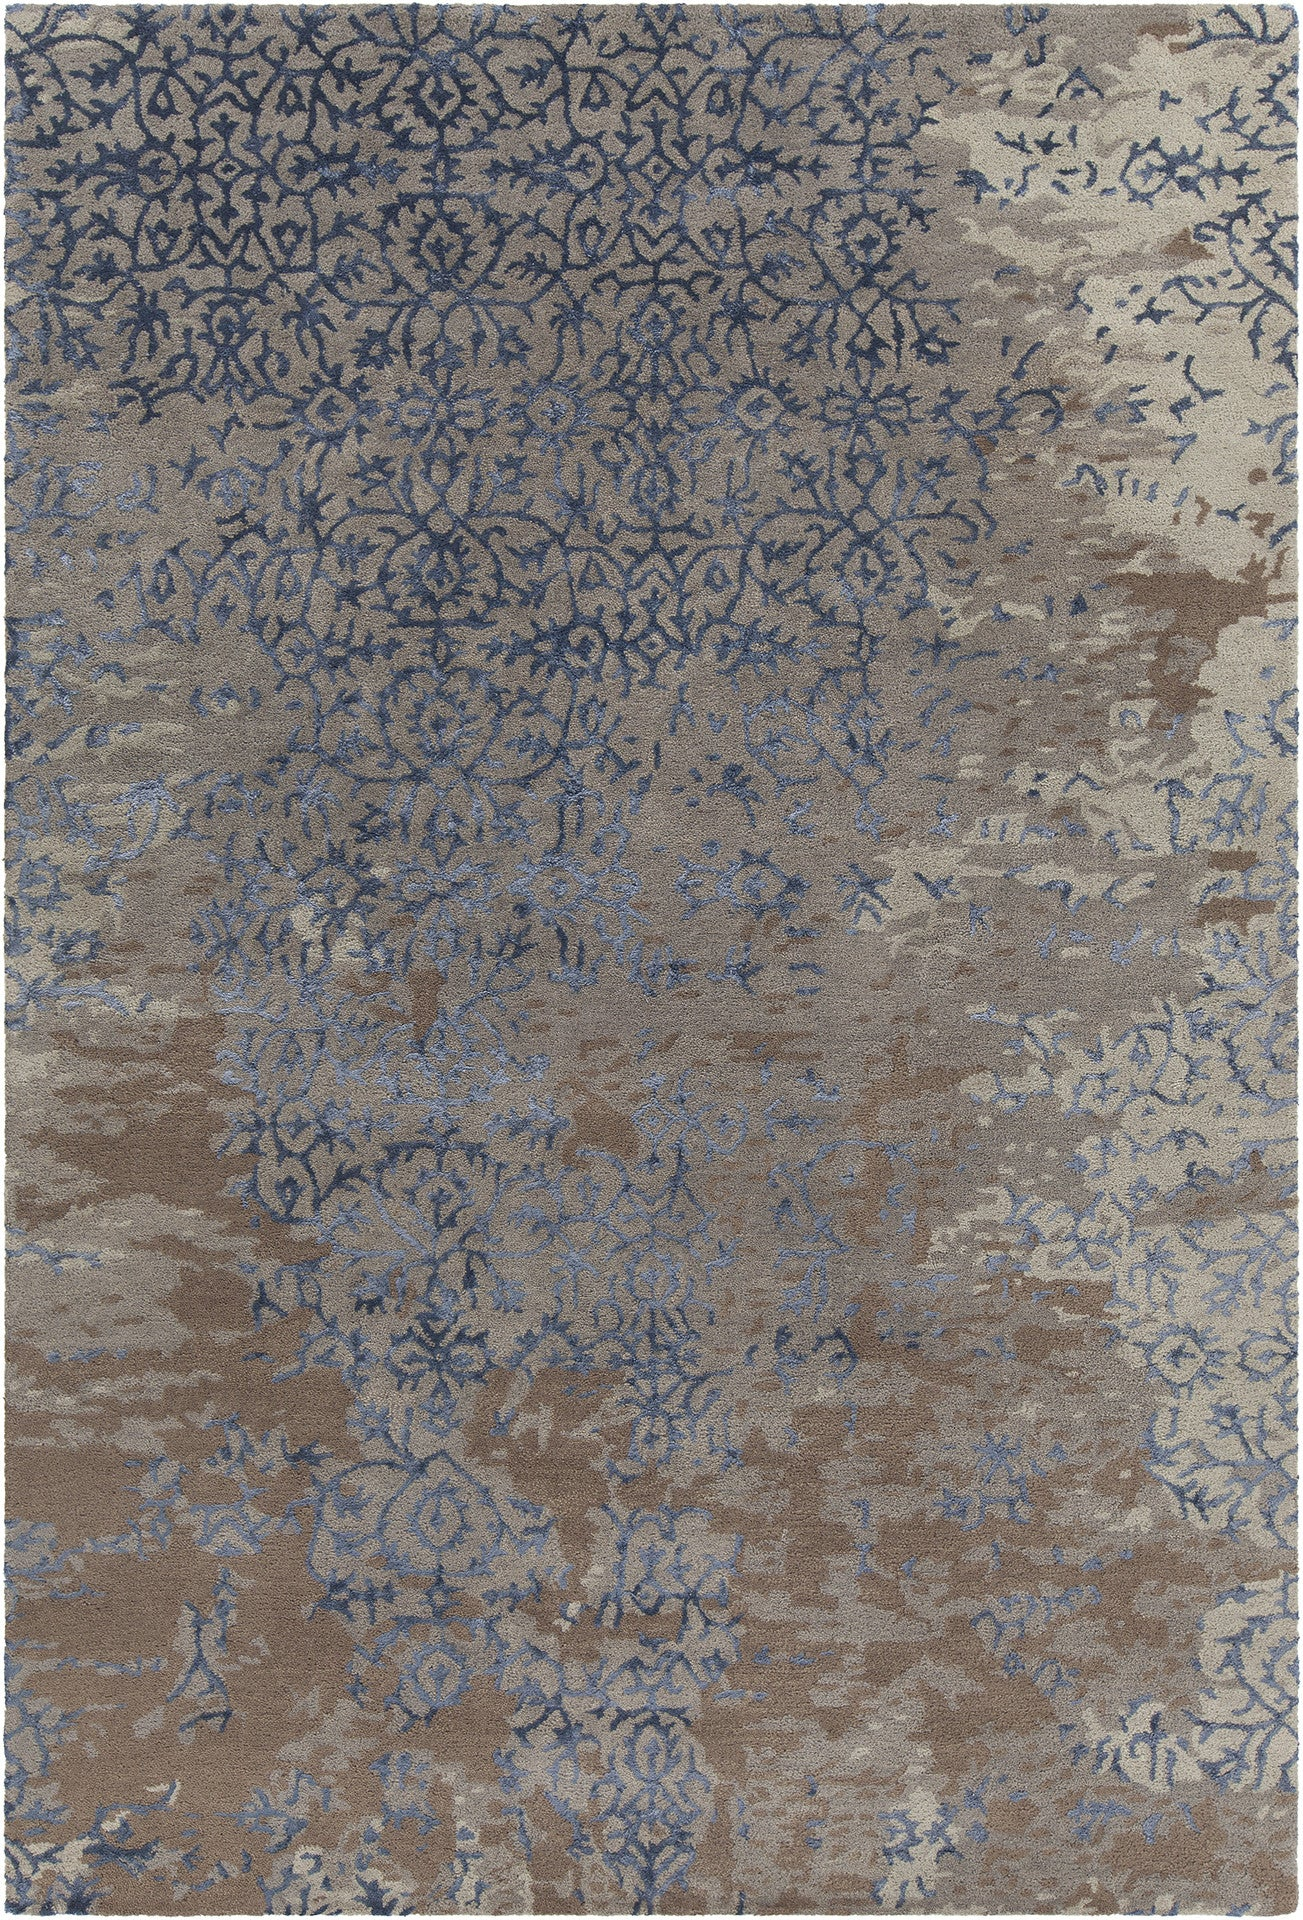 rupec collection handtufted area rug in grey blue  brown  - rupec collection handtufted area rug in grey blue  brown design bychandra rugs